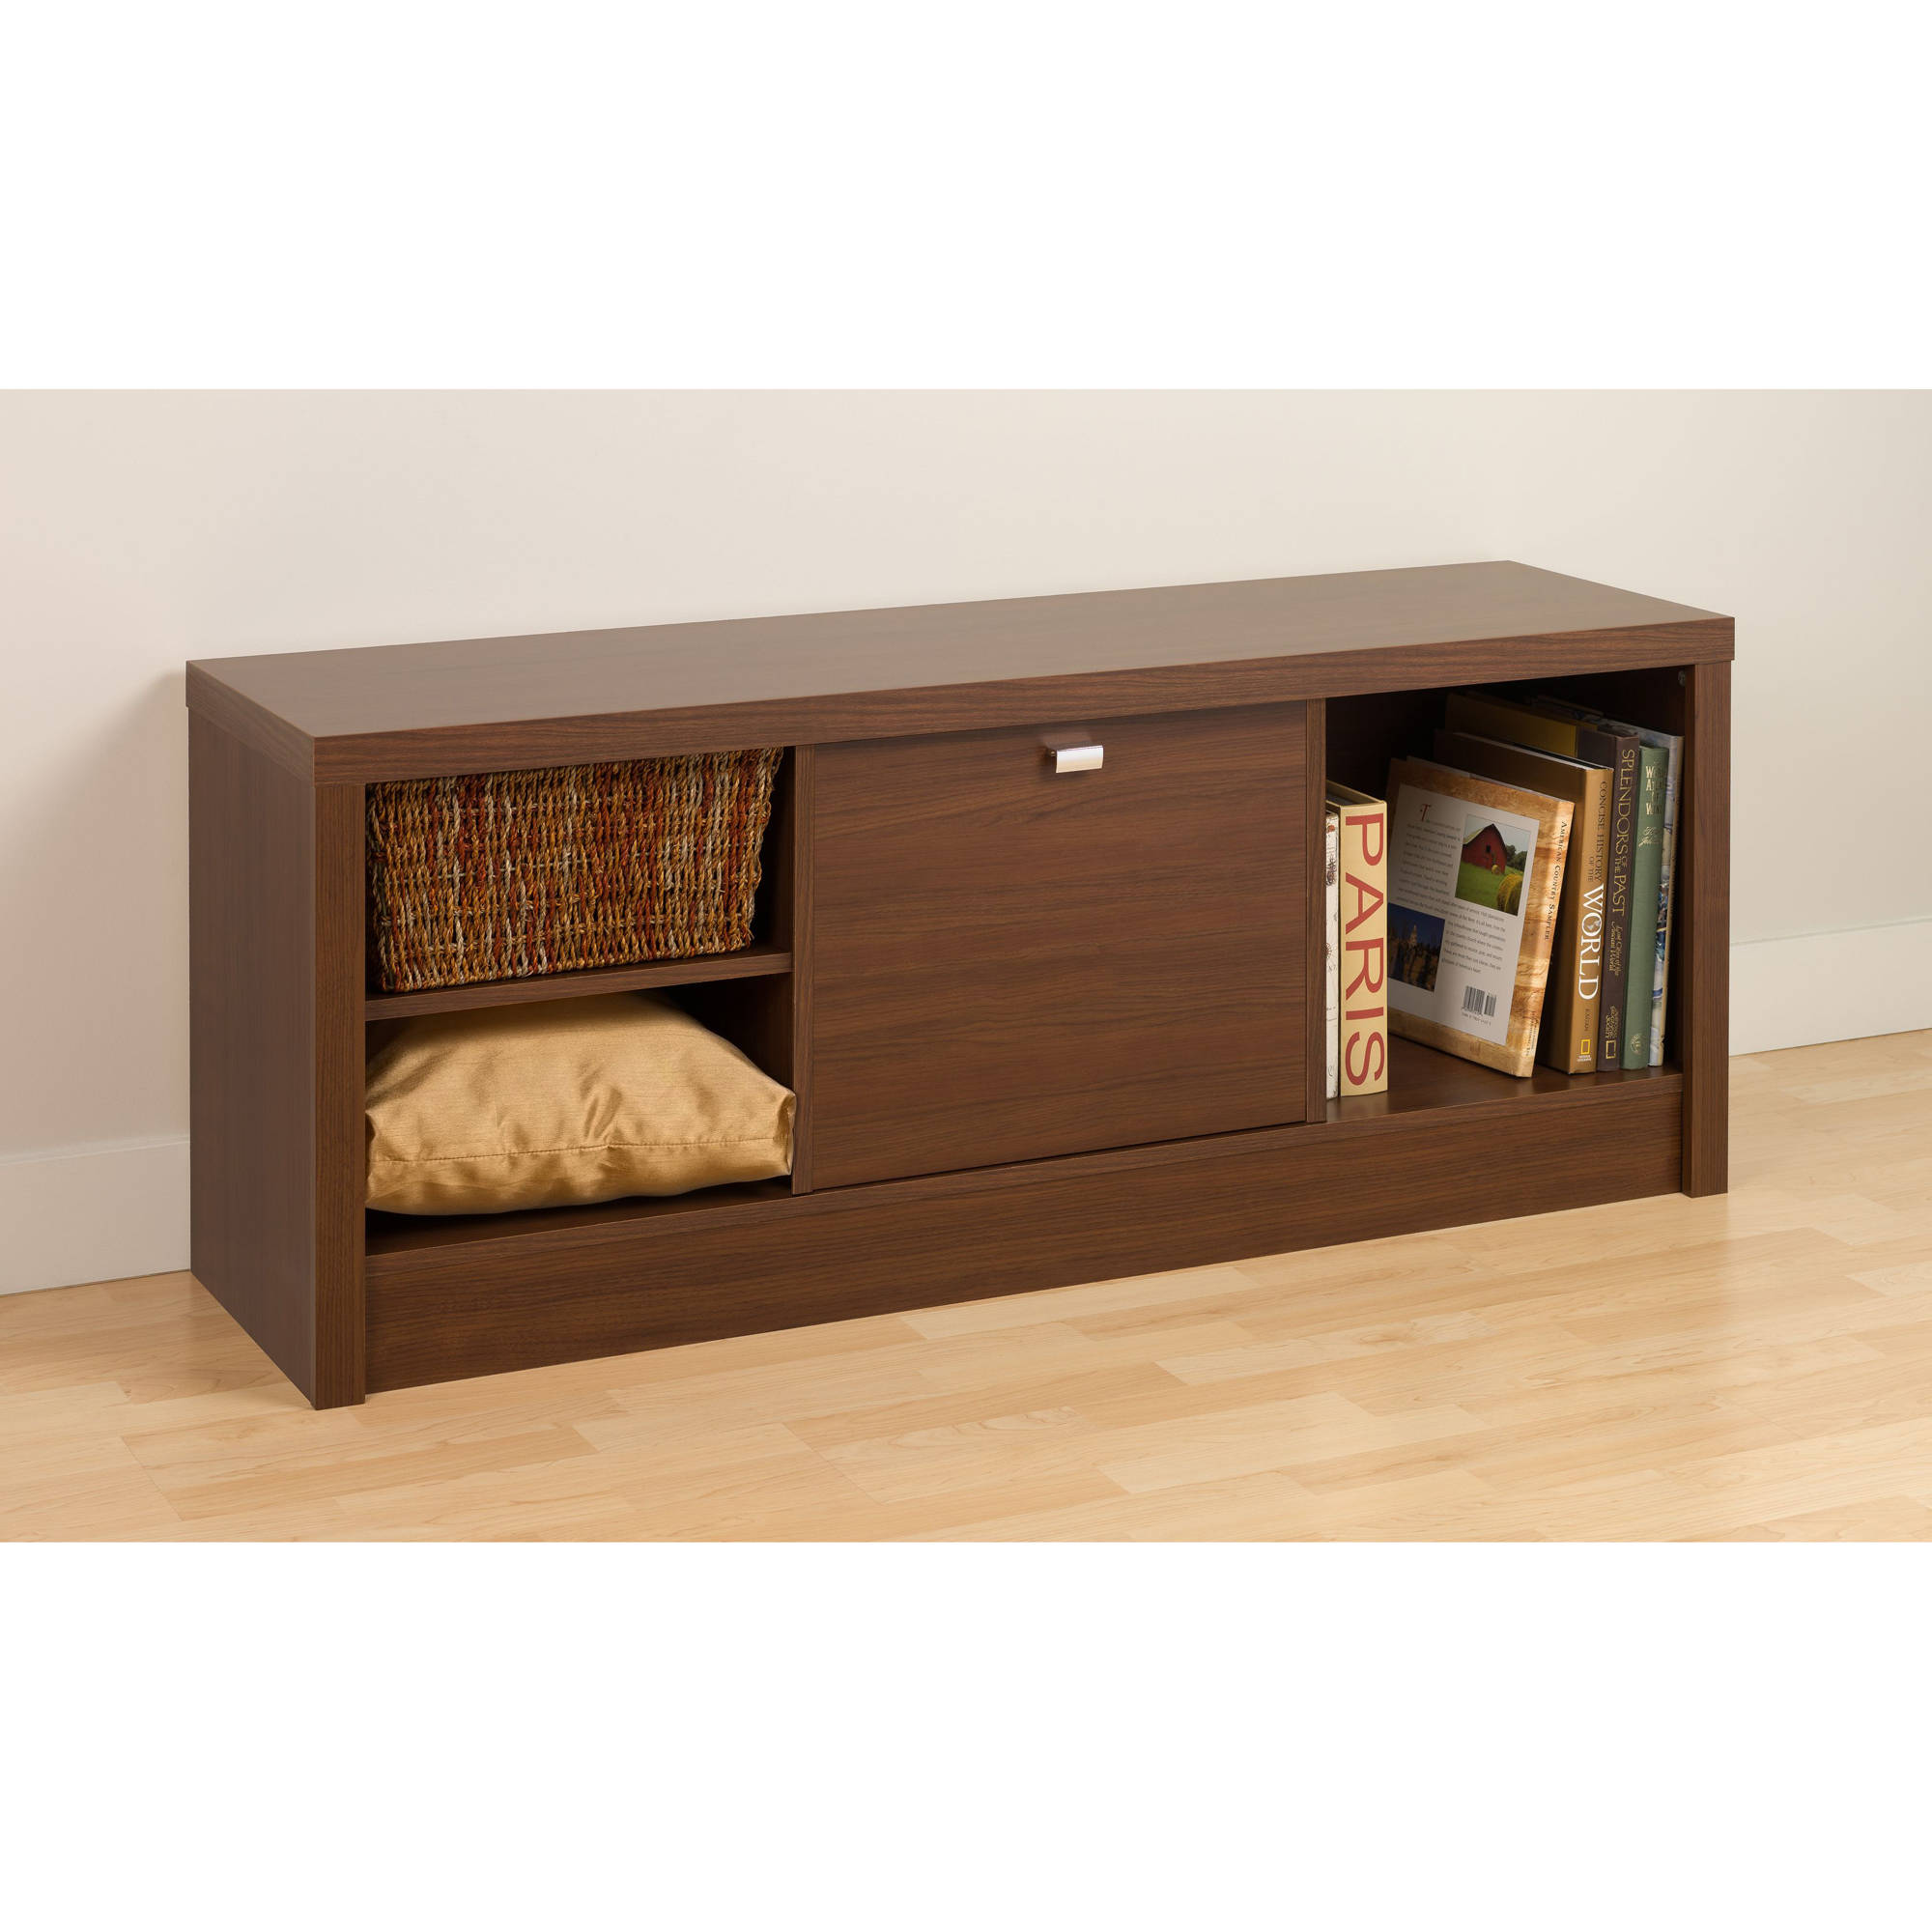 Prepac Series 9 1-Door Cubbie Bench, Medium Brown Walnut